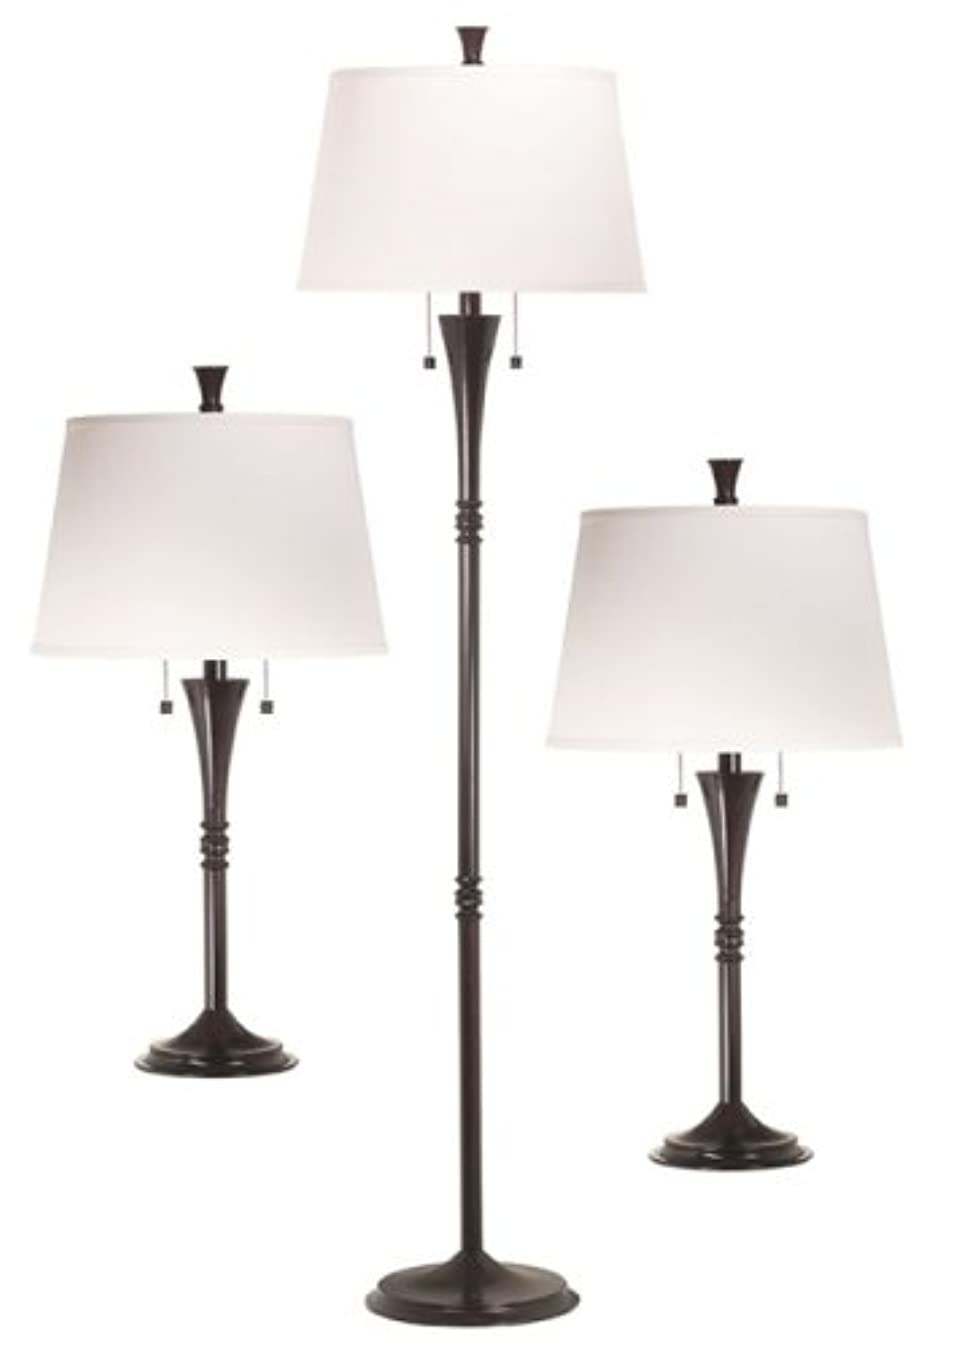 Kenroy Home 30843ORB Park Avenue 3-Piece Lamp Set with Oil-Rubbed Bronze Finish